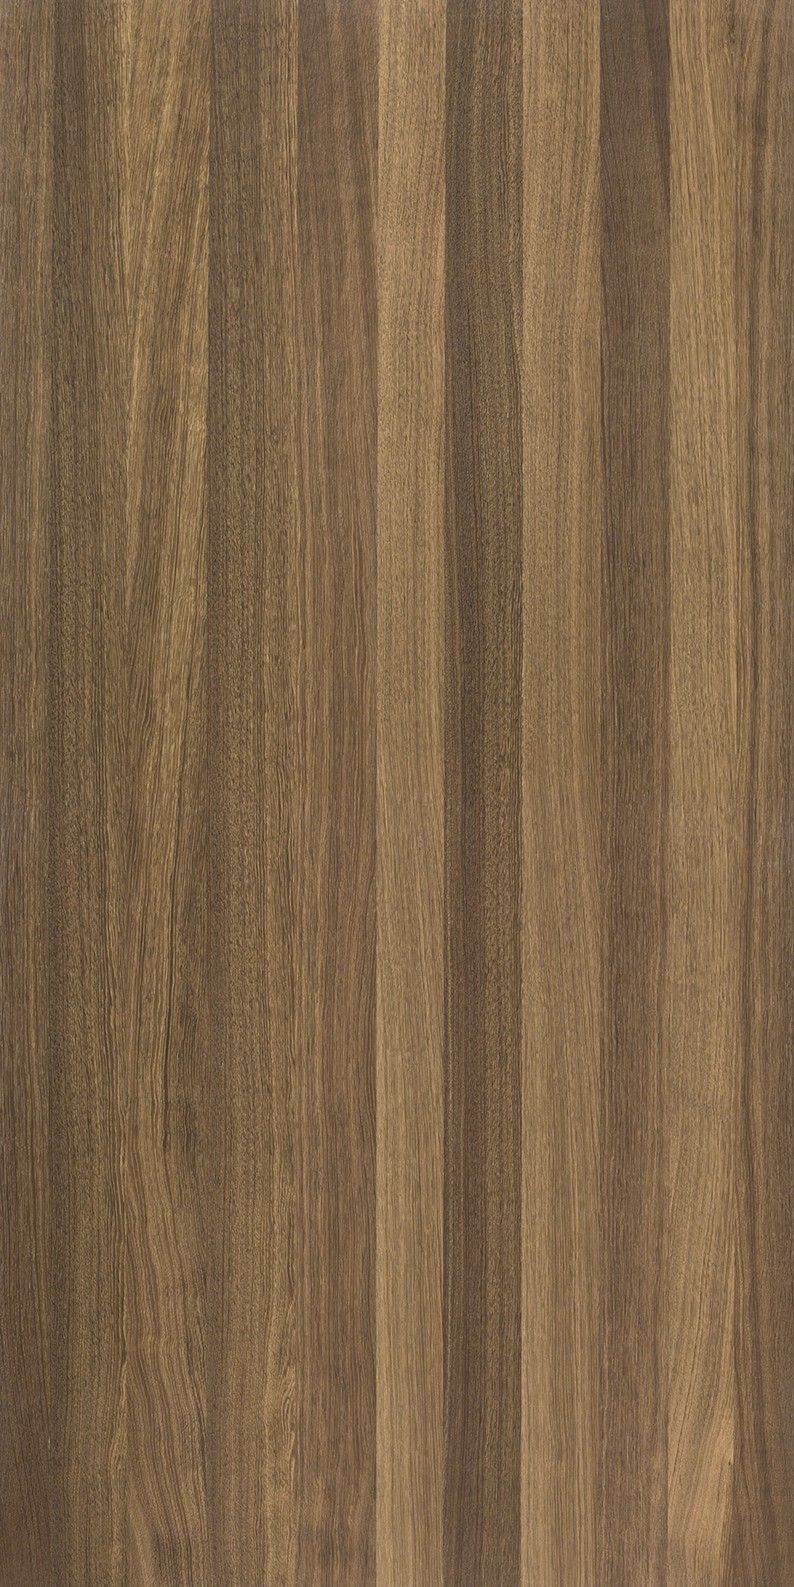 Oak Smoked Querkus By Decospan Material Pinterest Wood Wood